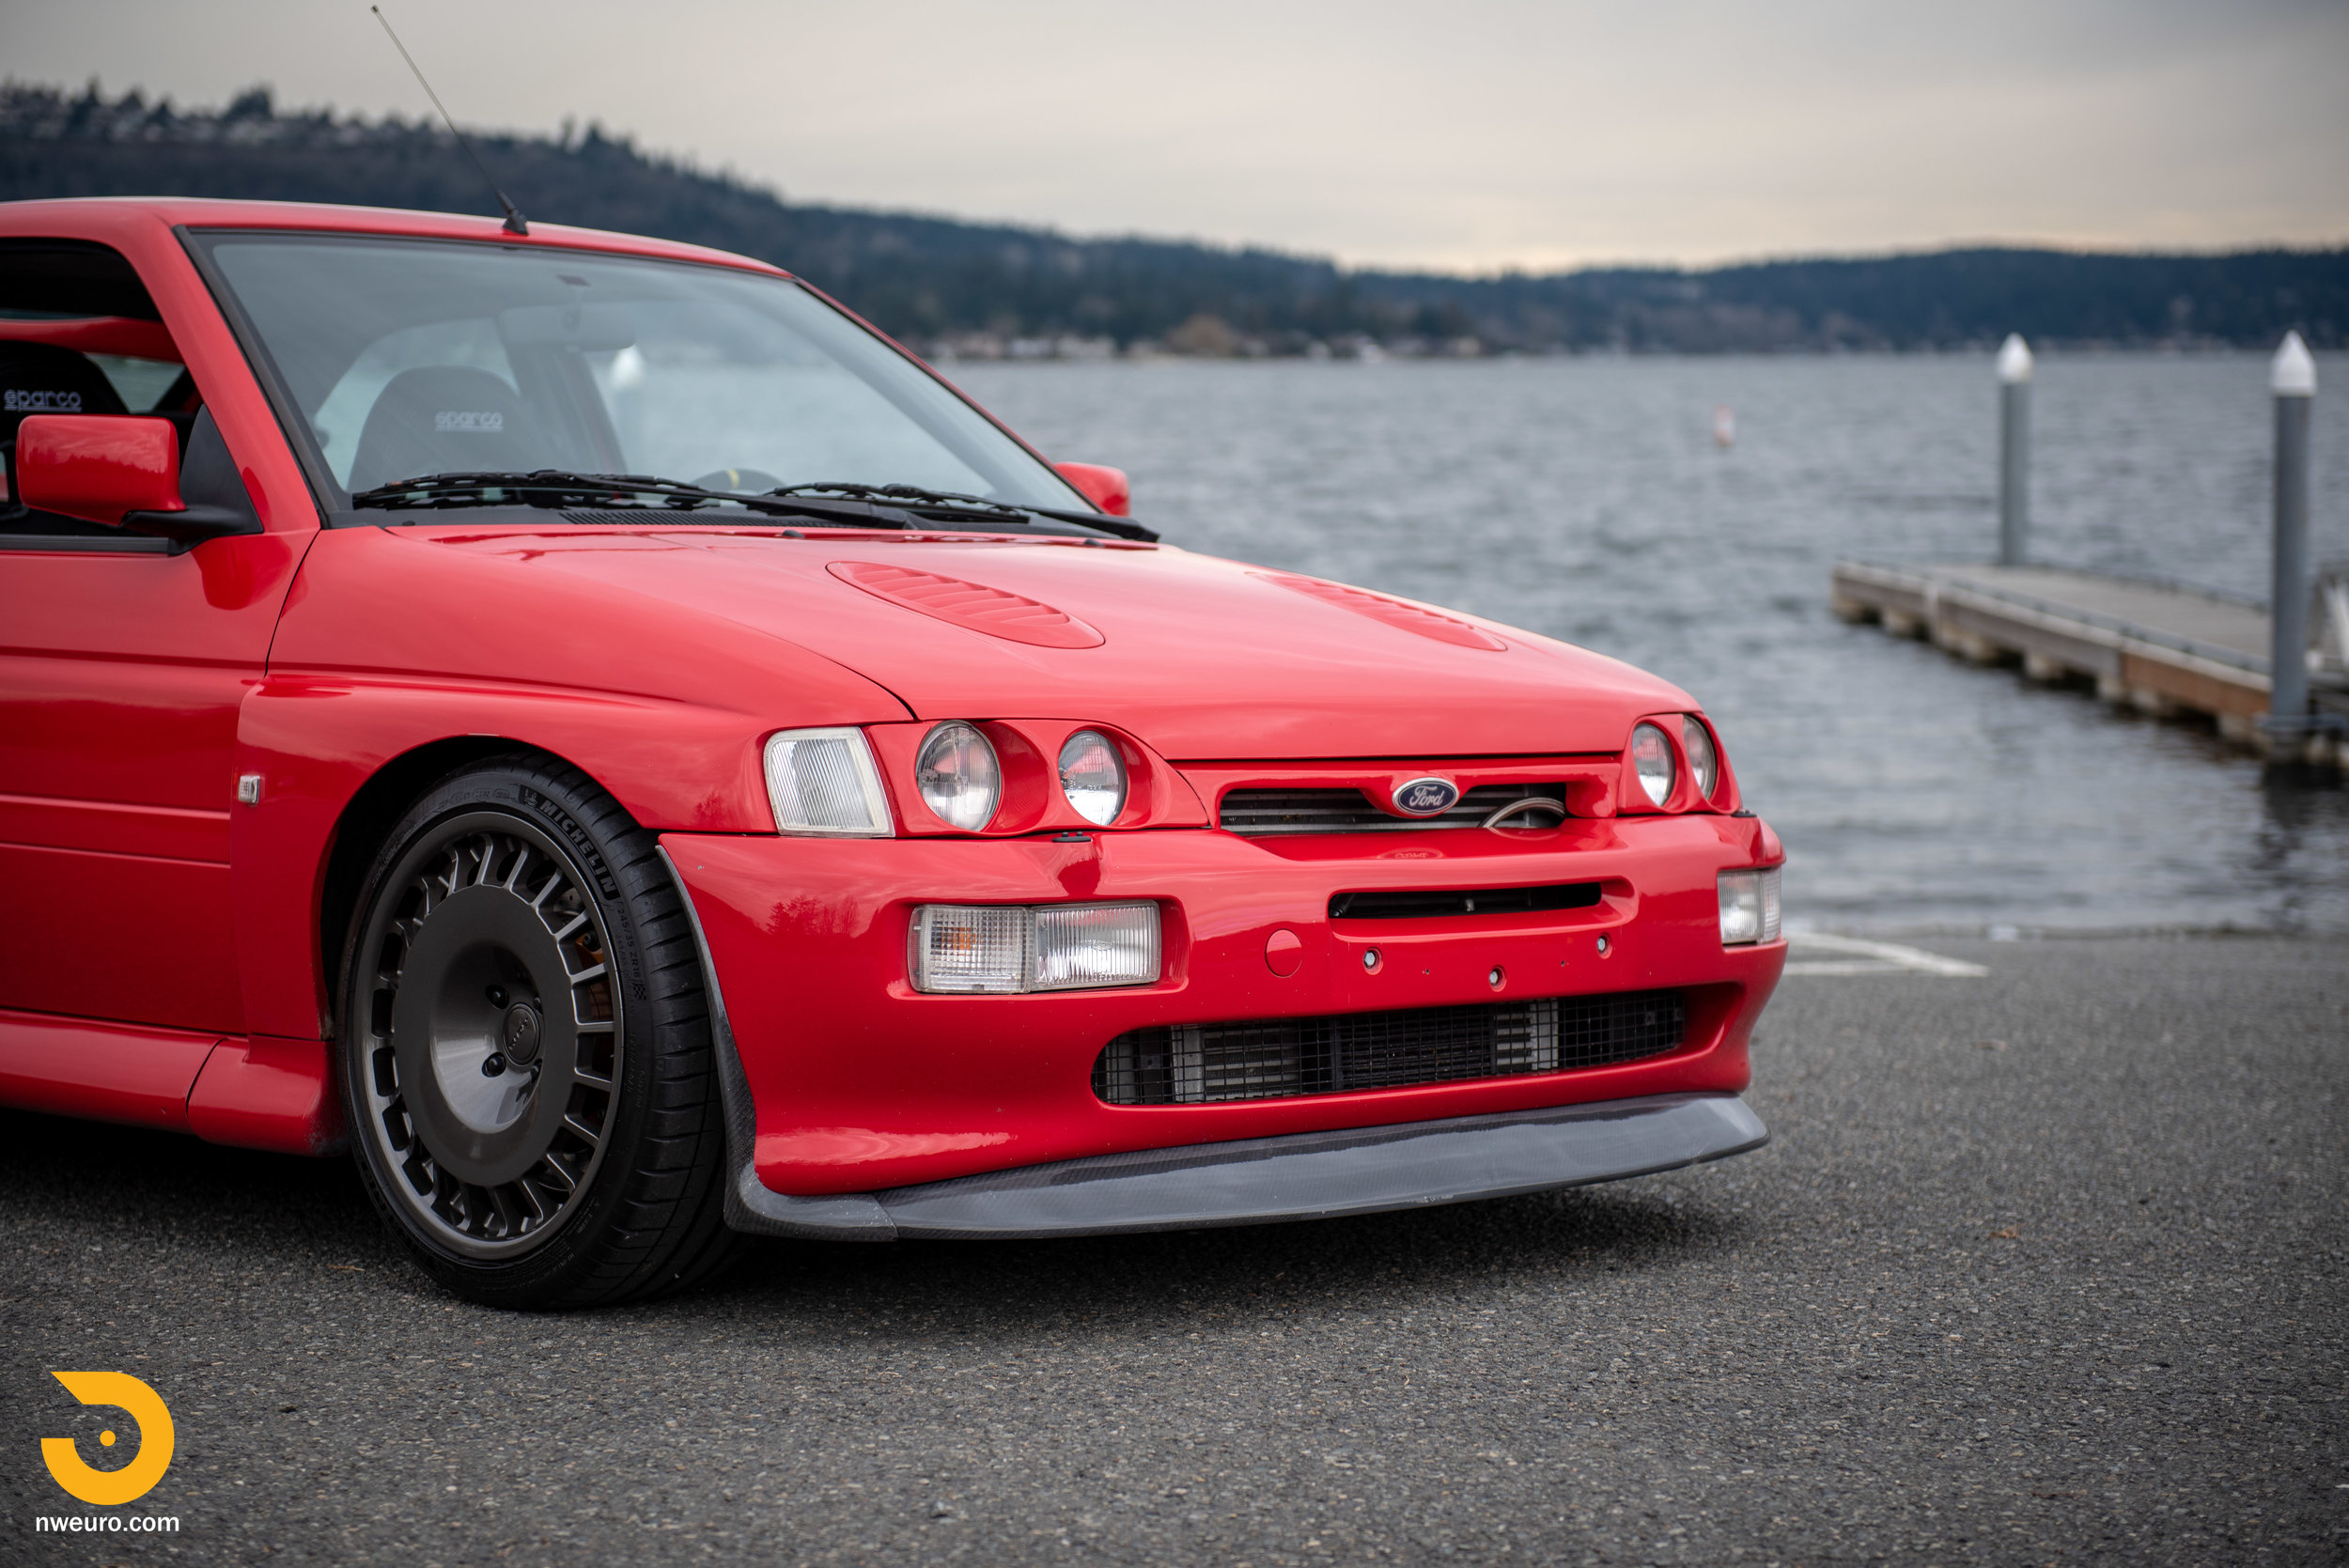 1993 Ford Escort Cosworth RS Red-9.jpg